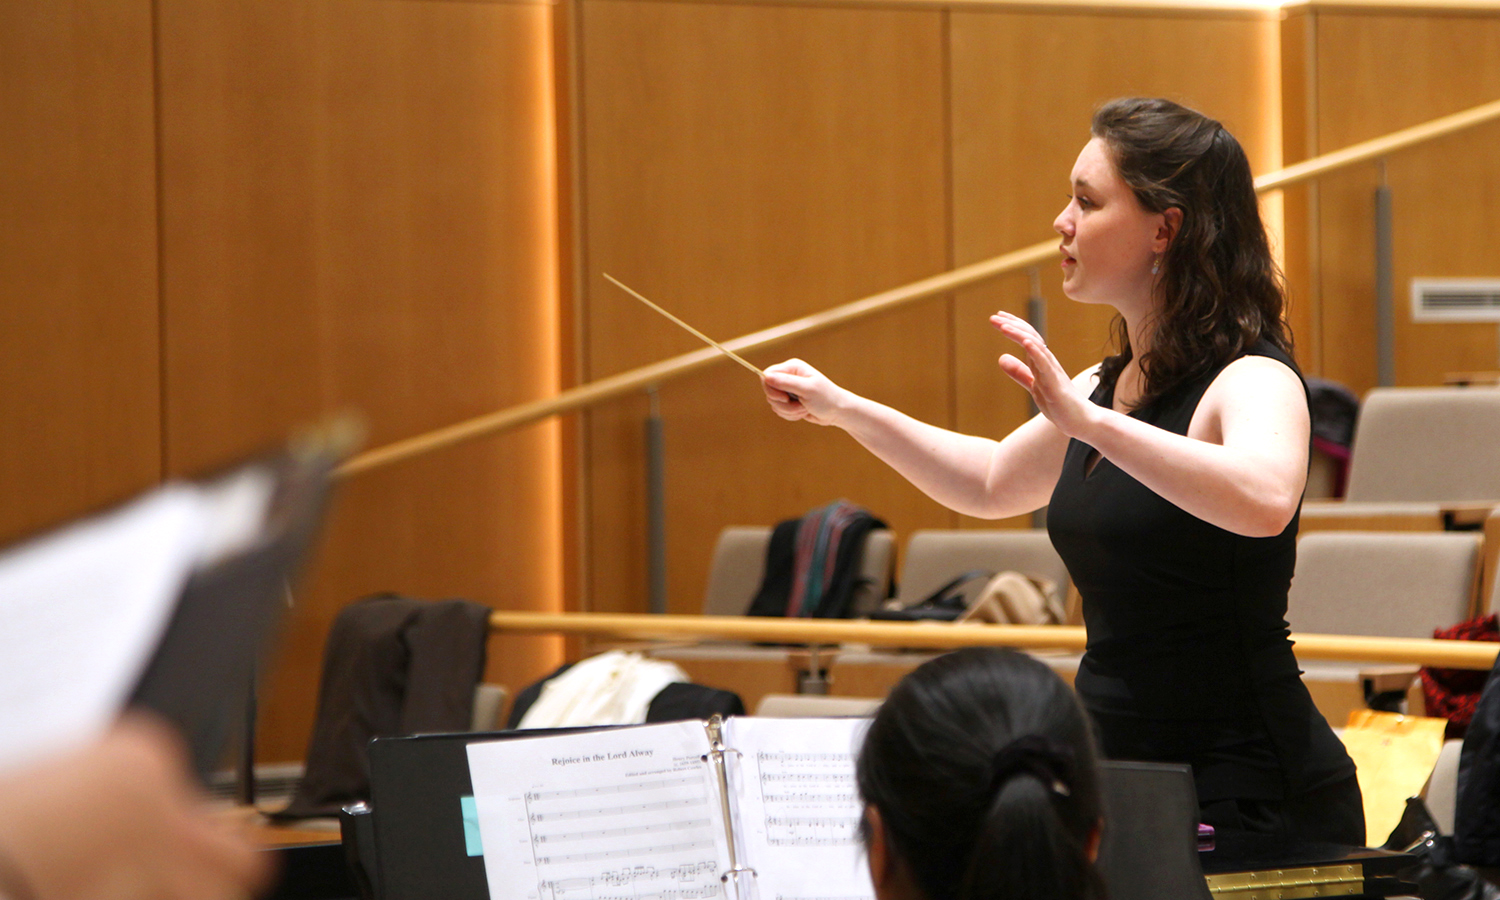 Elena Parkins â18 conducts a recital in Froelich Hall as part of her yearlong Honors project in choral conducting.